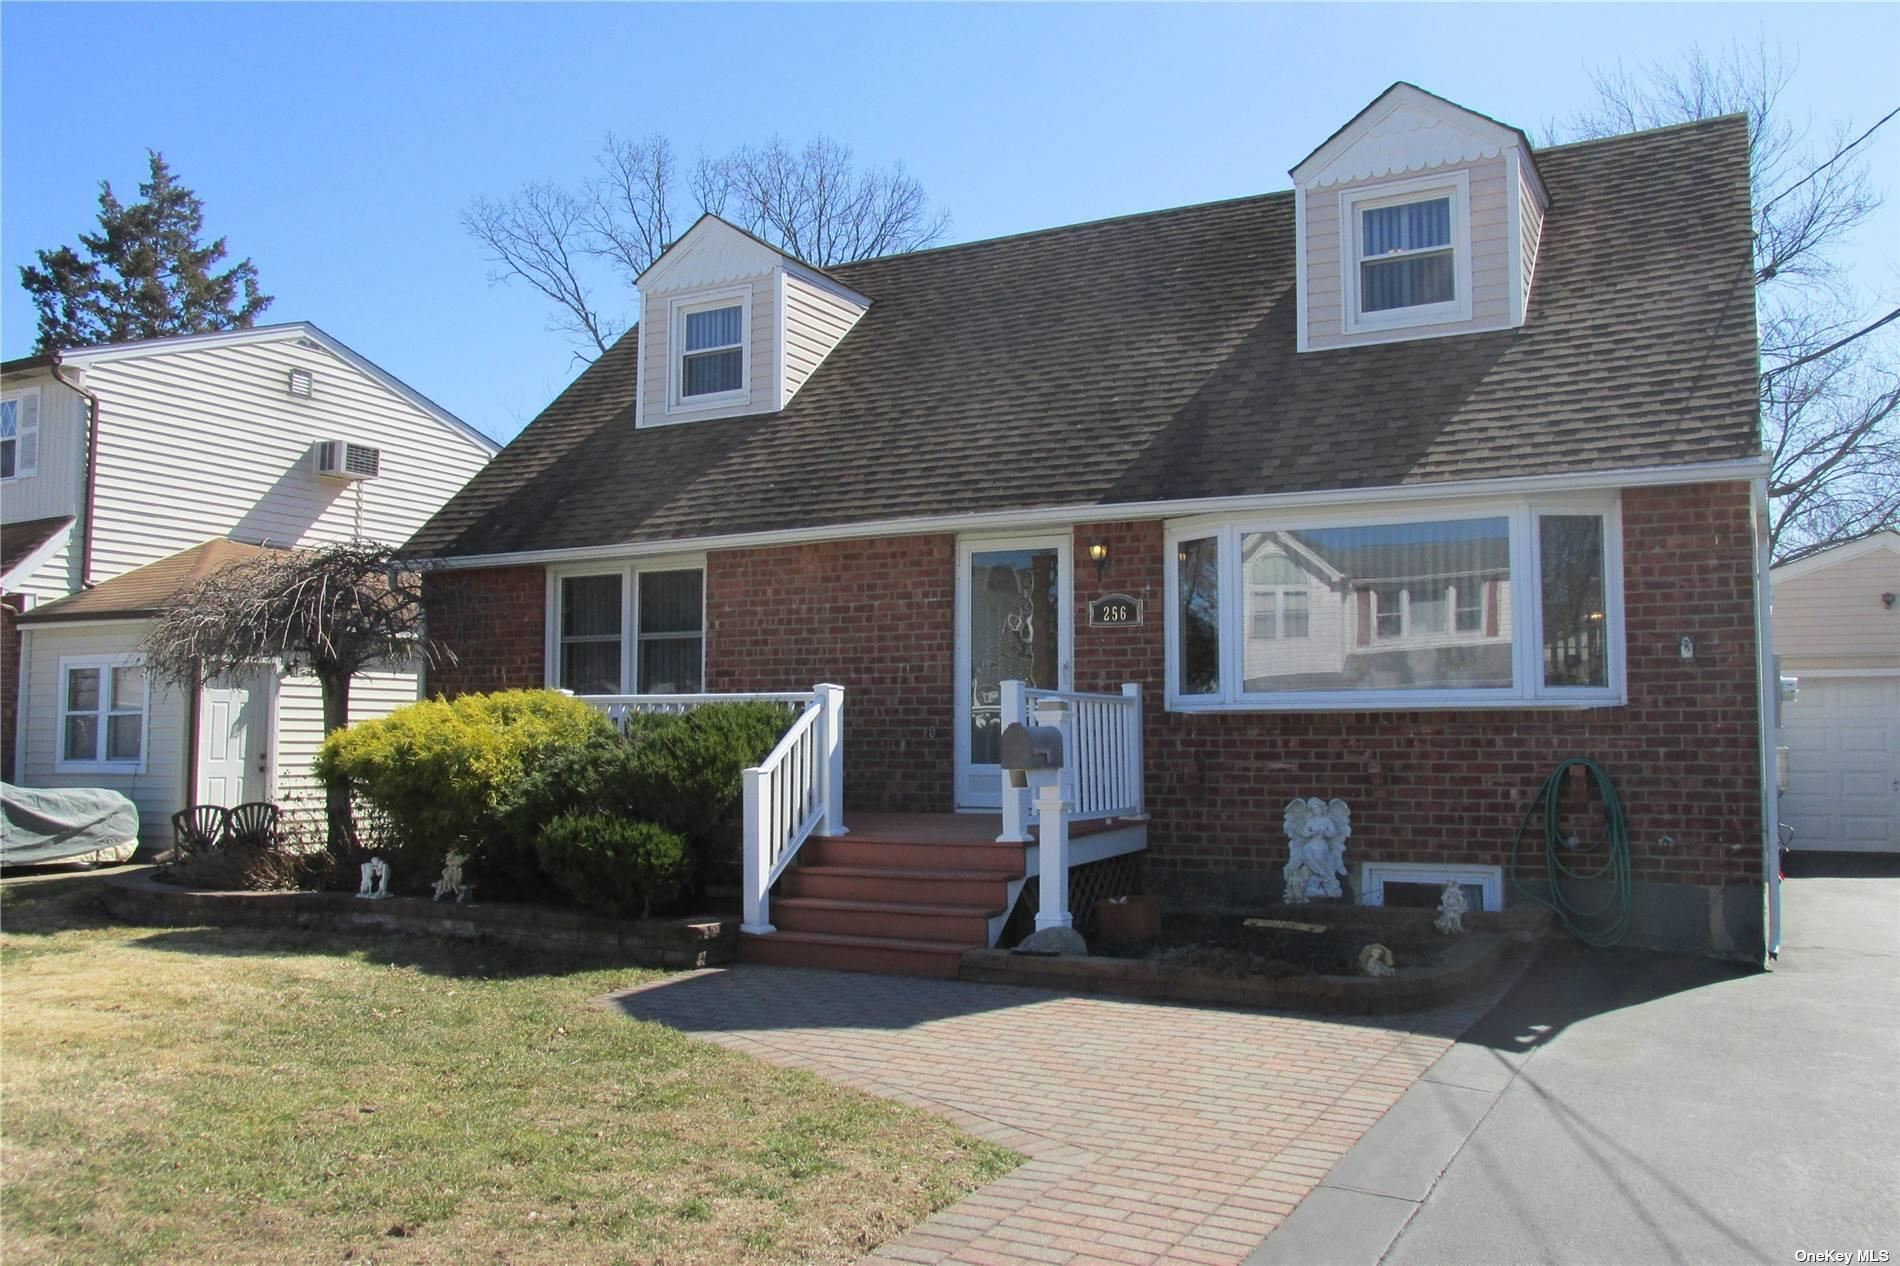 256 N Walnut Street, Massapequa, NY 11758 - MLS#: 3275131